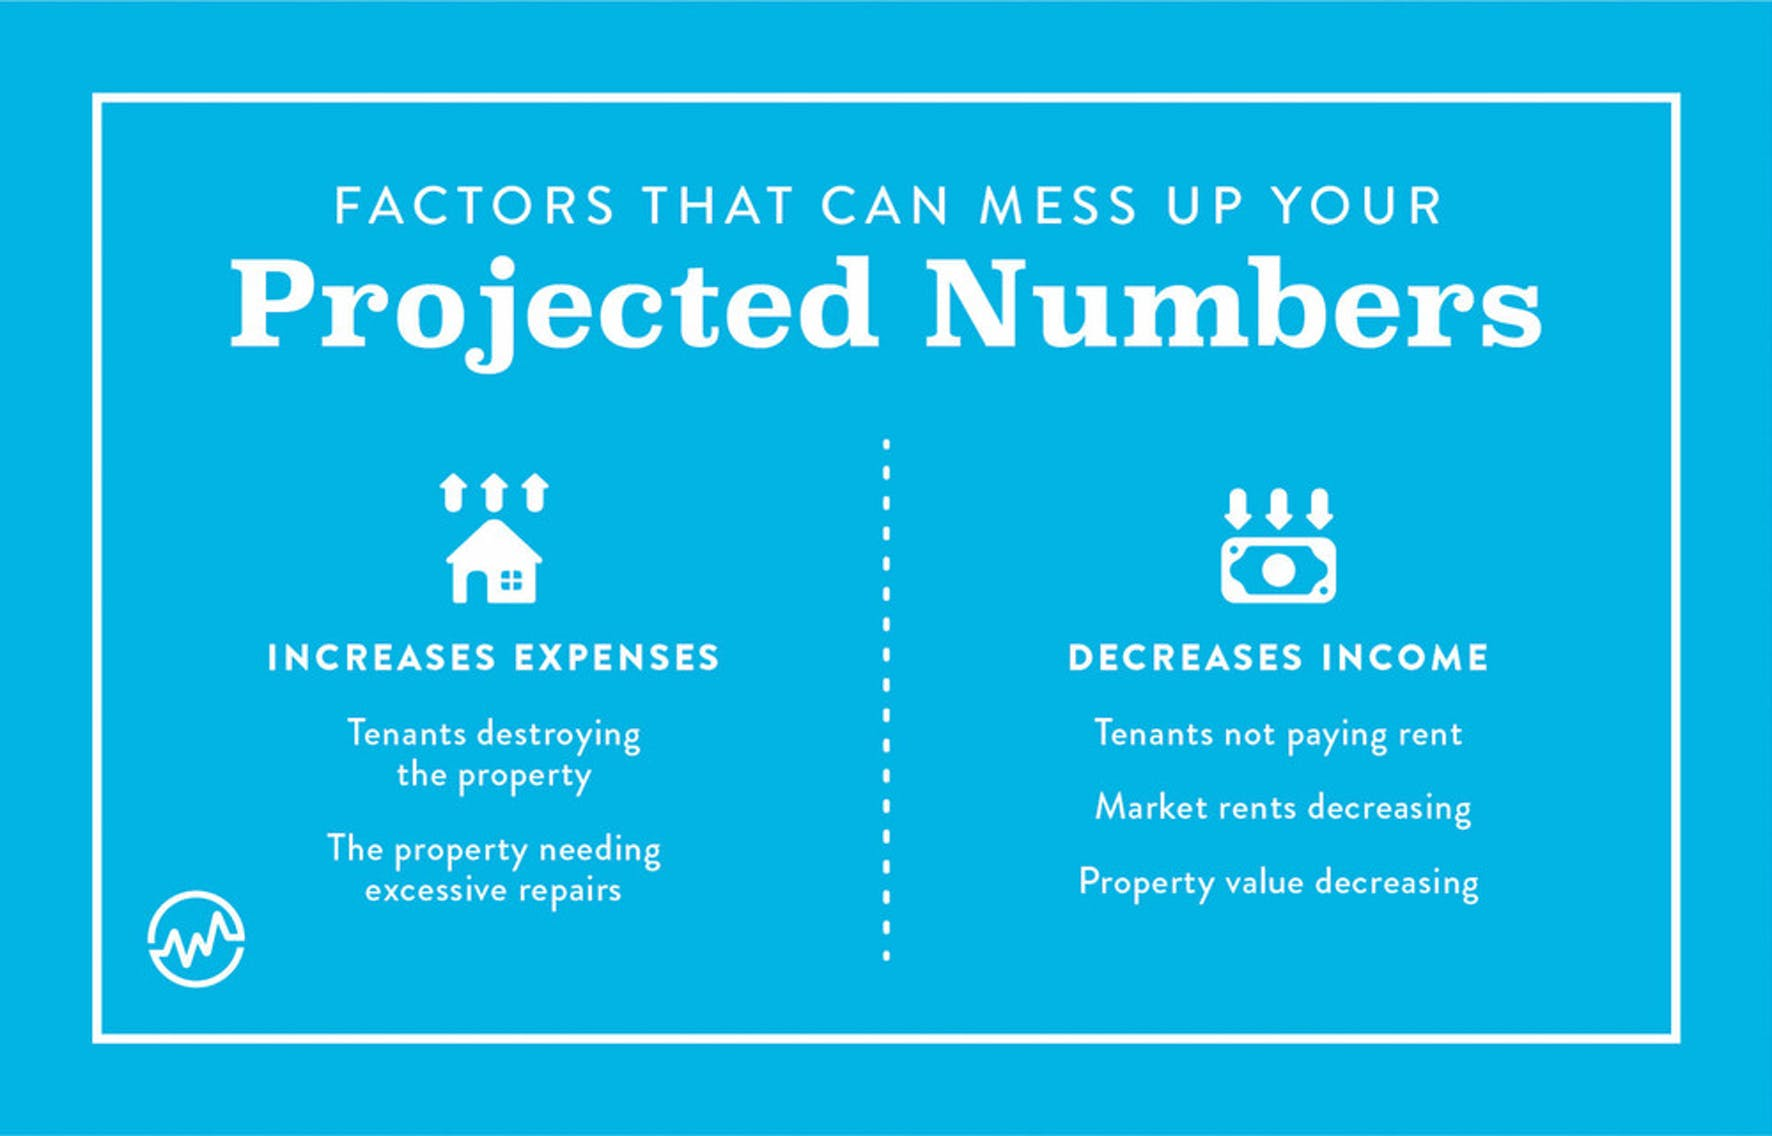 Factors that can mess up your projected numbers for rental property investment